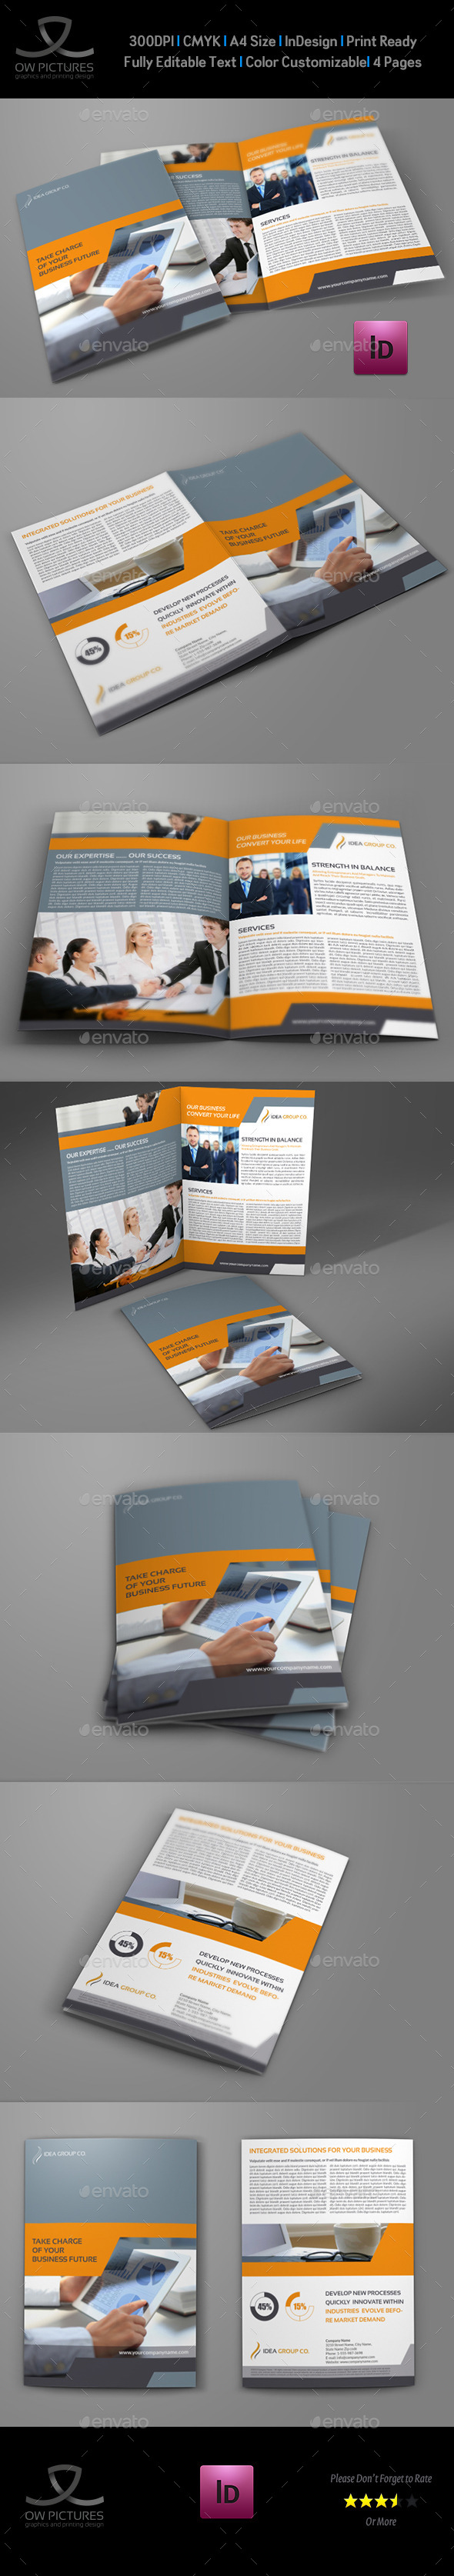 Company Brochure Bi-Fold Template Vol.34 - Corporate Brochures